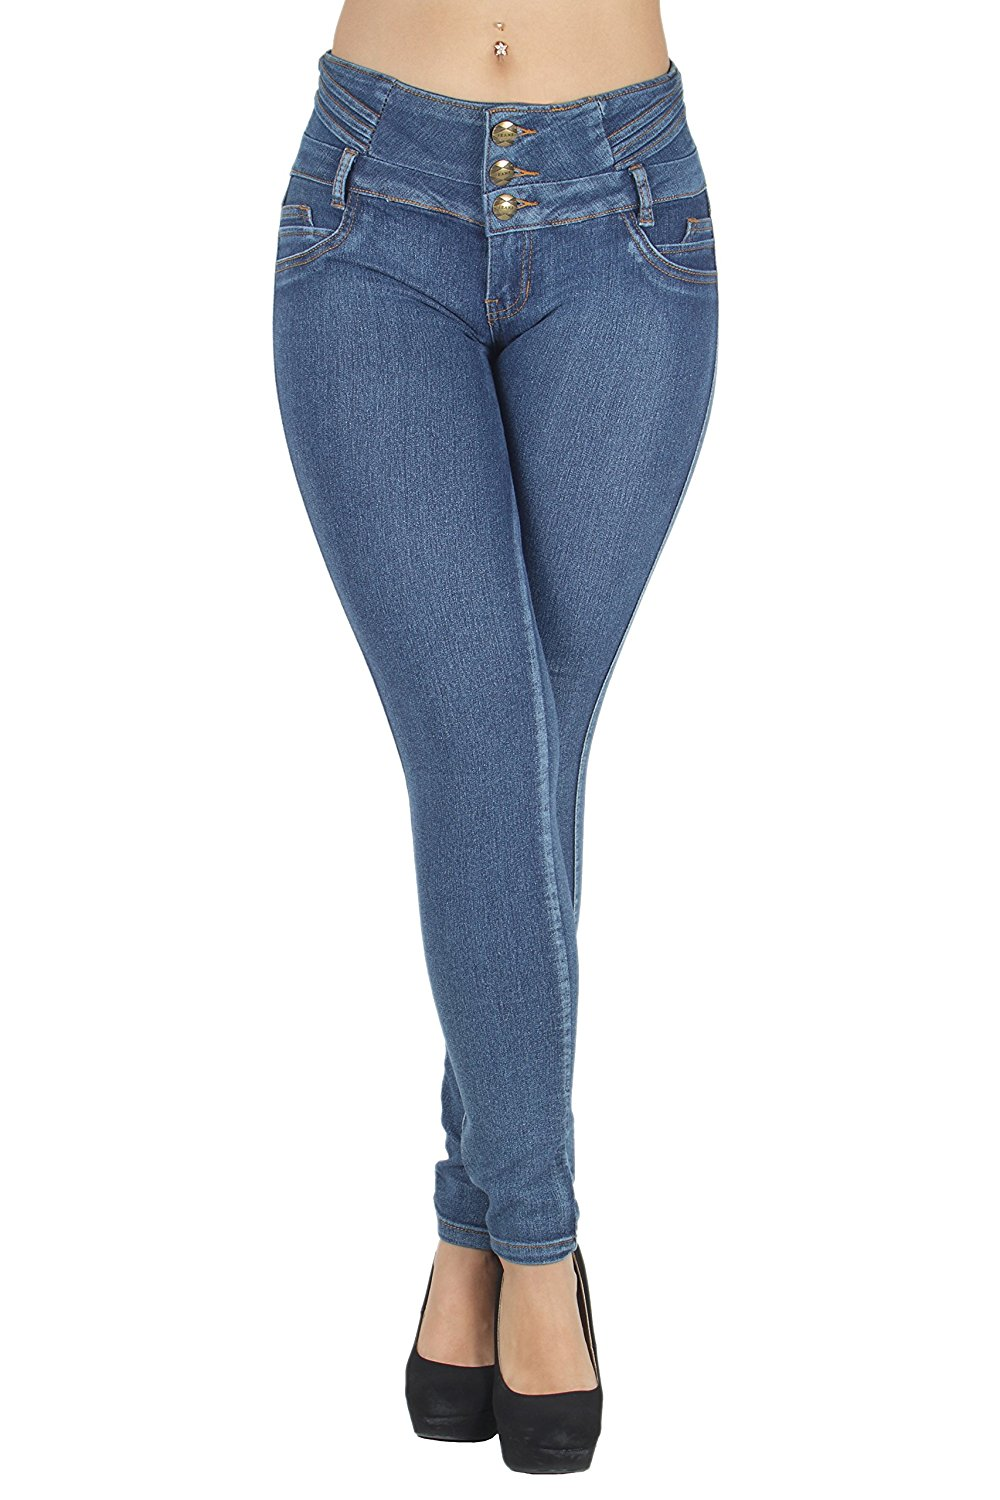 N616P - Plus Size, Colombian Design, Butt Lift, Levanta Cola, Skinny Jeans